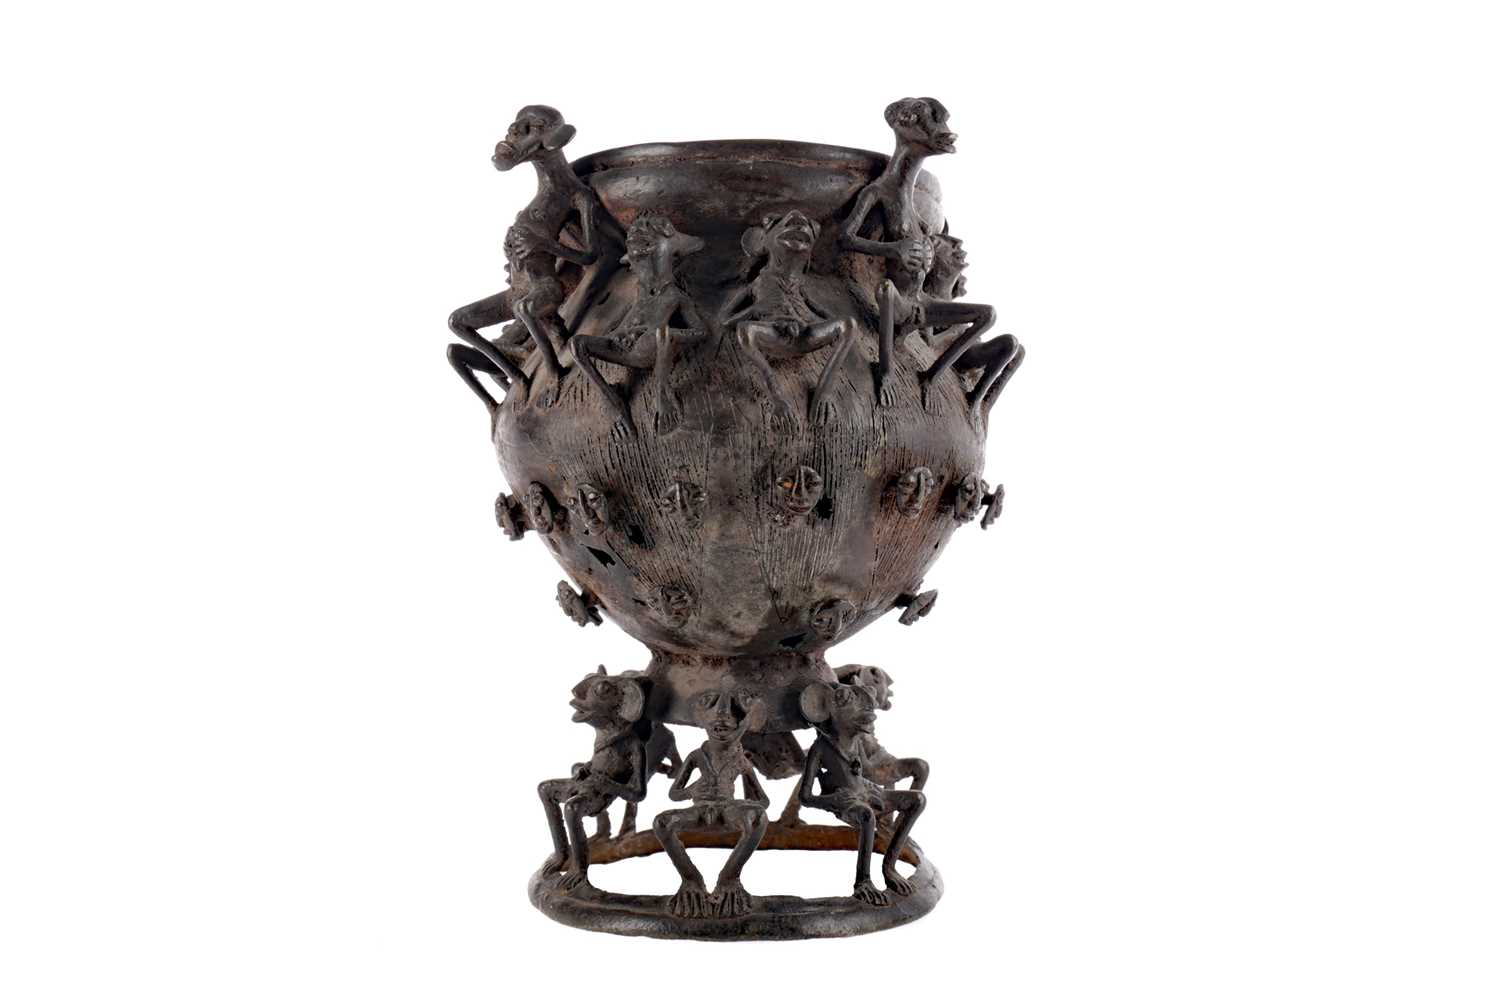 Lot 733 - AN EARLY 20TH CENTURY AFRICAN BALUSTER SHAPED VESSEL